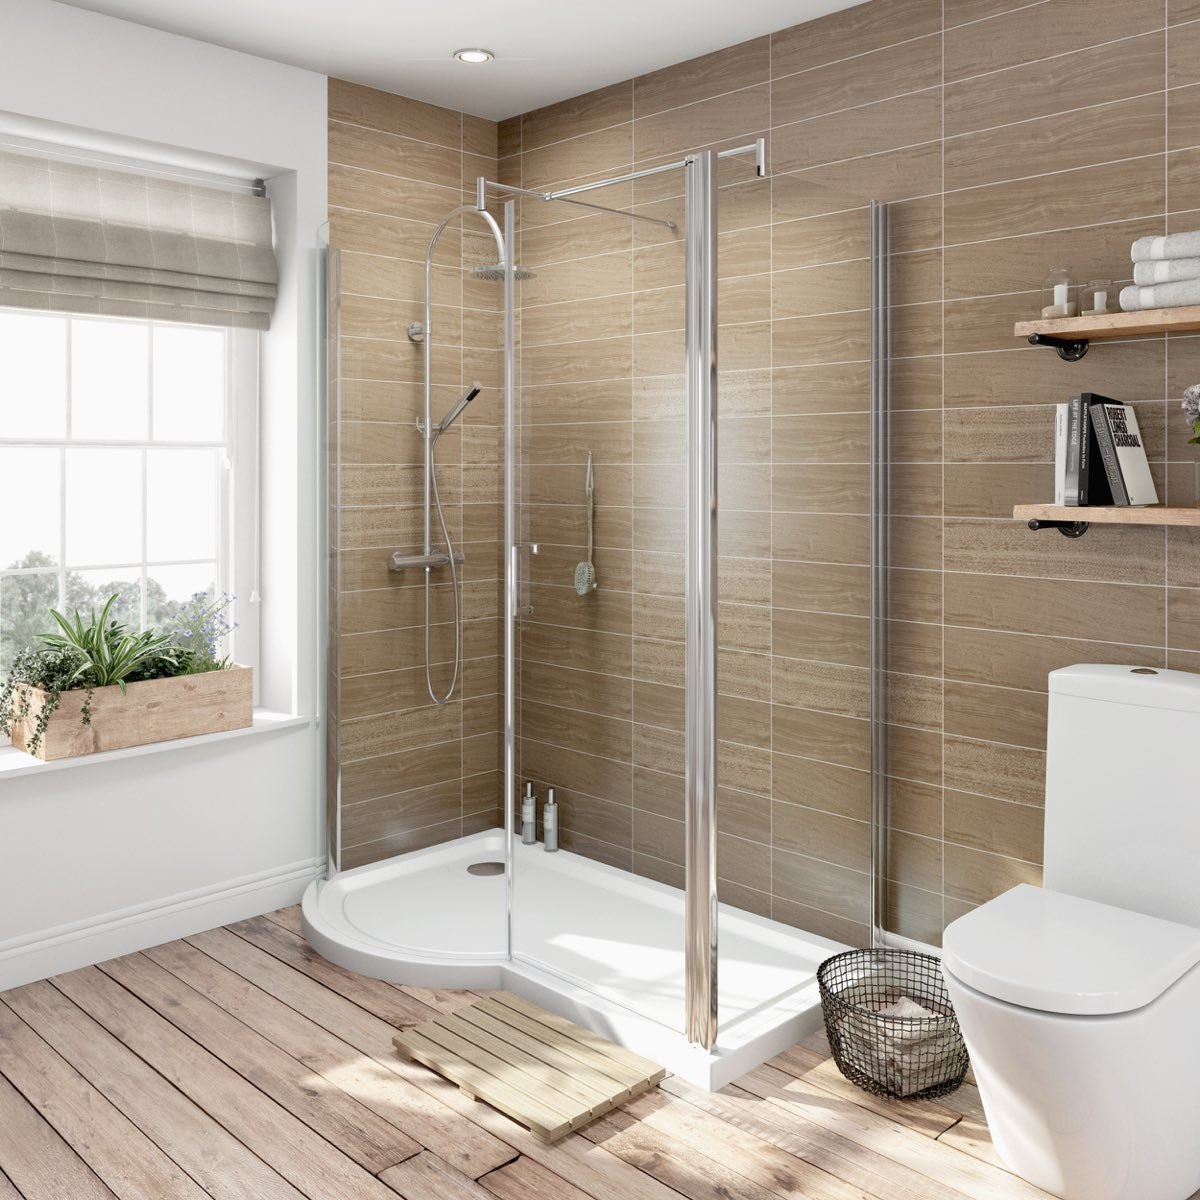 Orchard 6mm left handed P shaped shower enclosure 1500 x 900